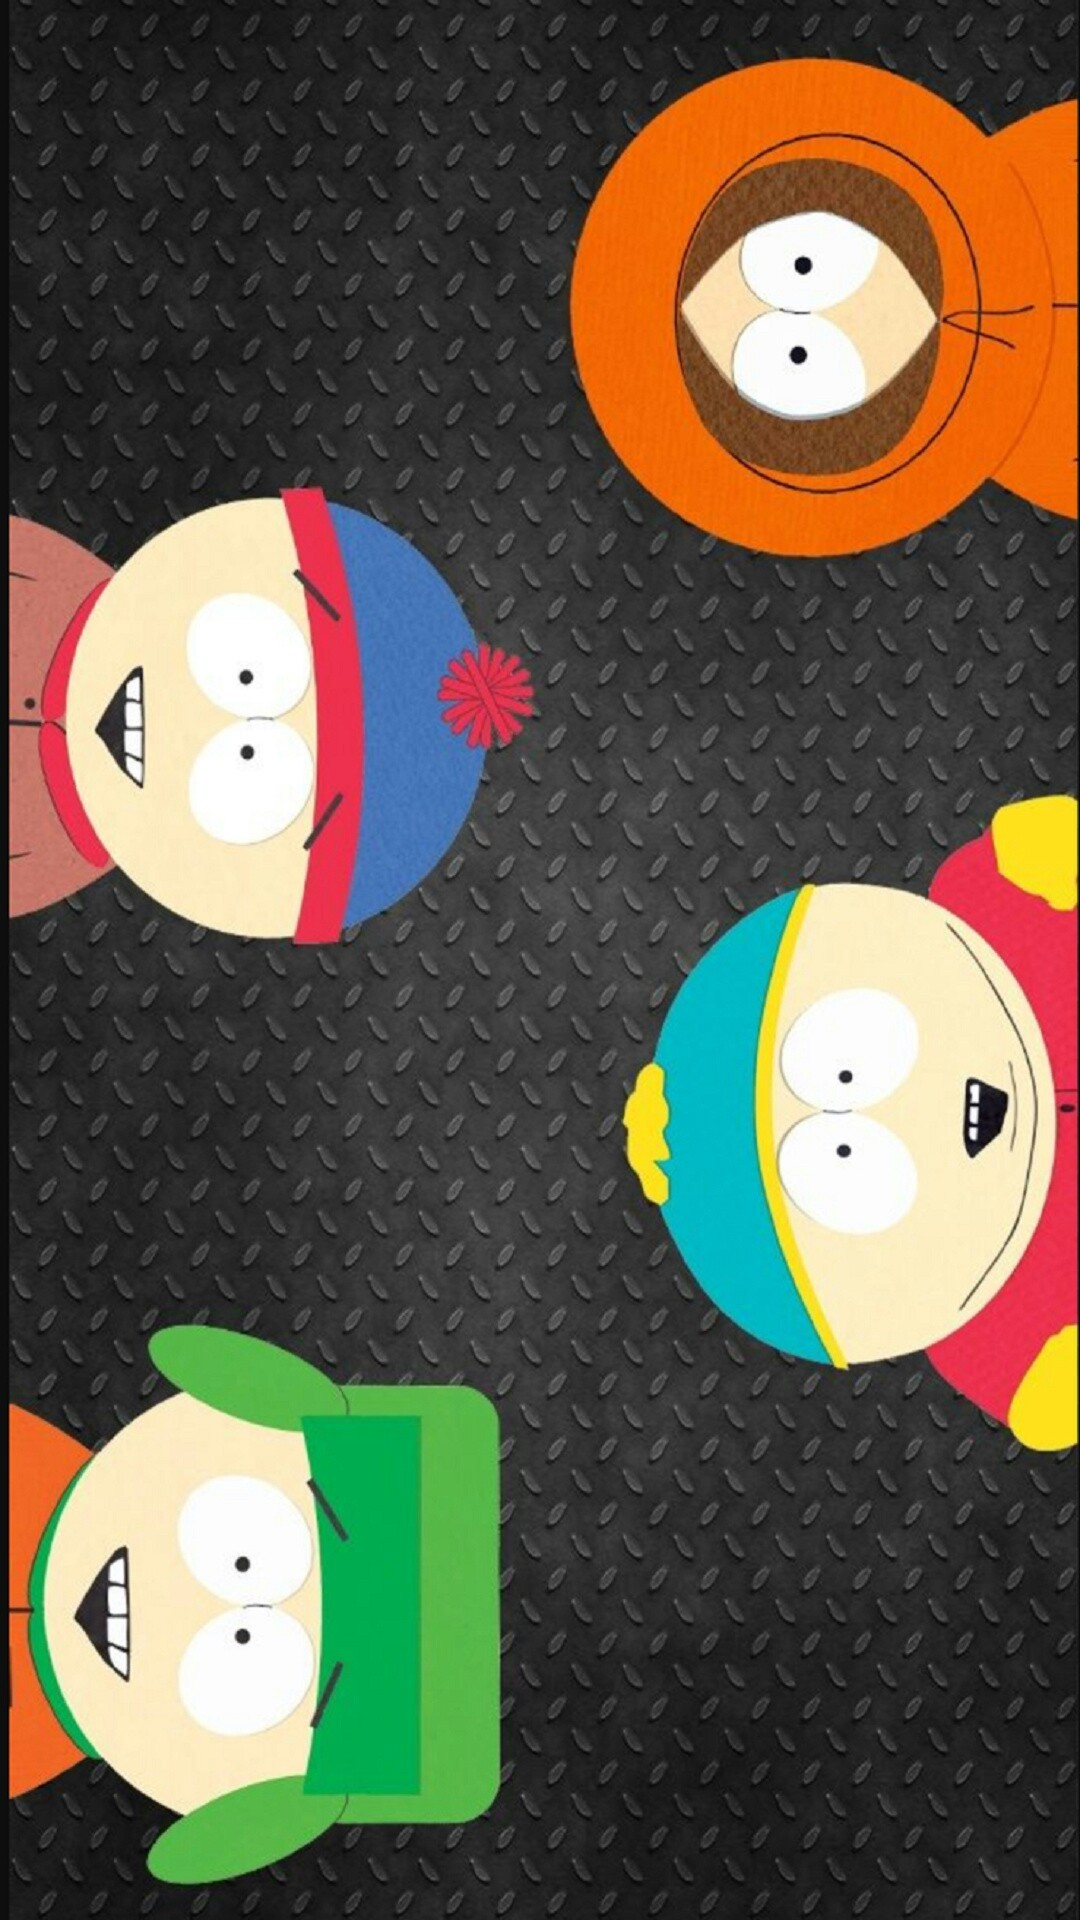 south park south park the stick of truth eric cartman butters